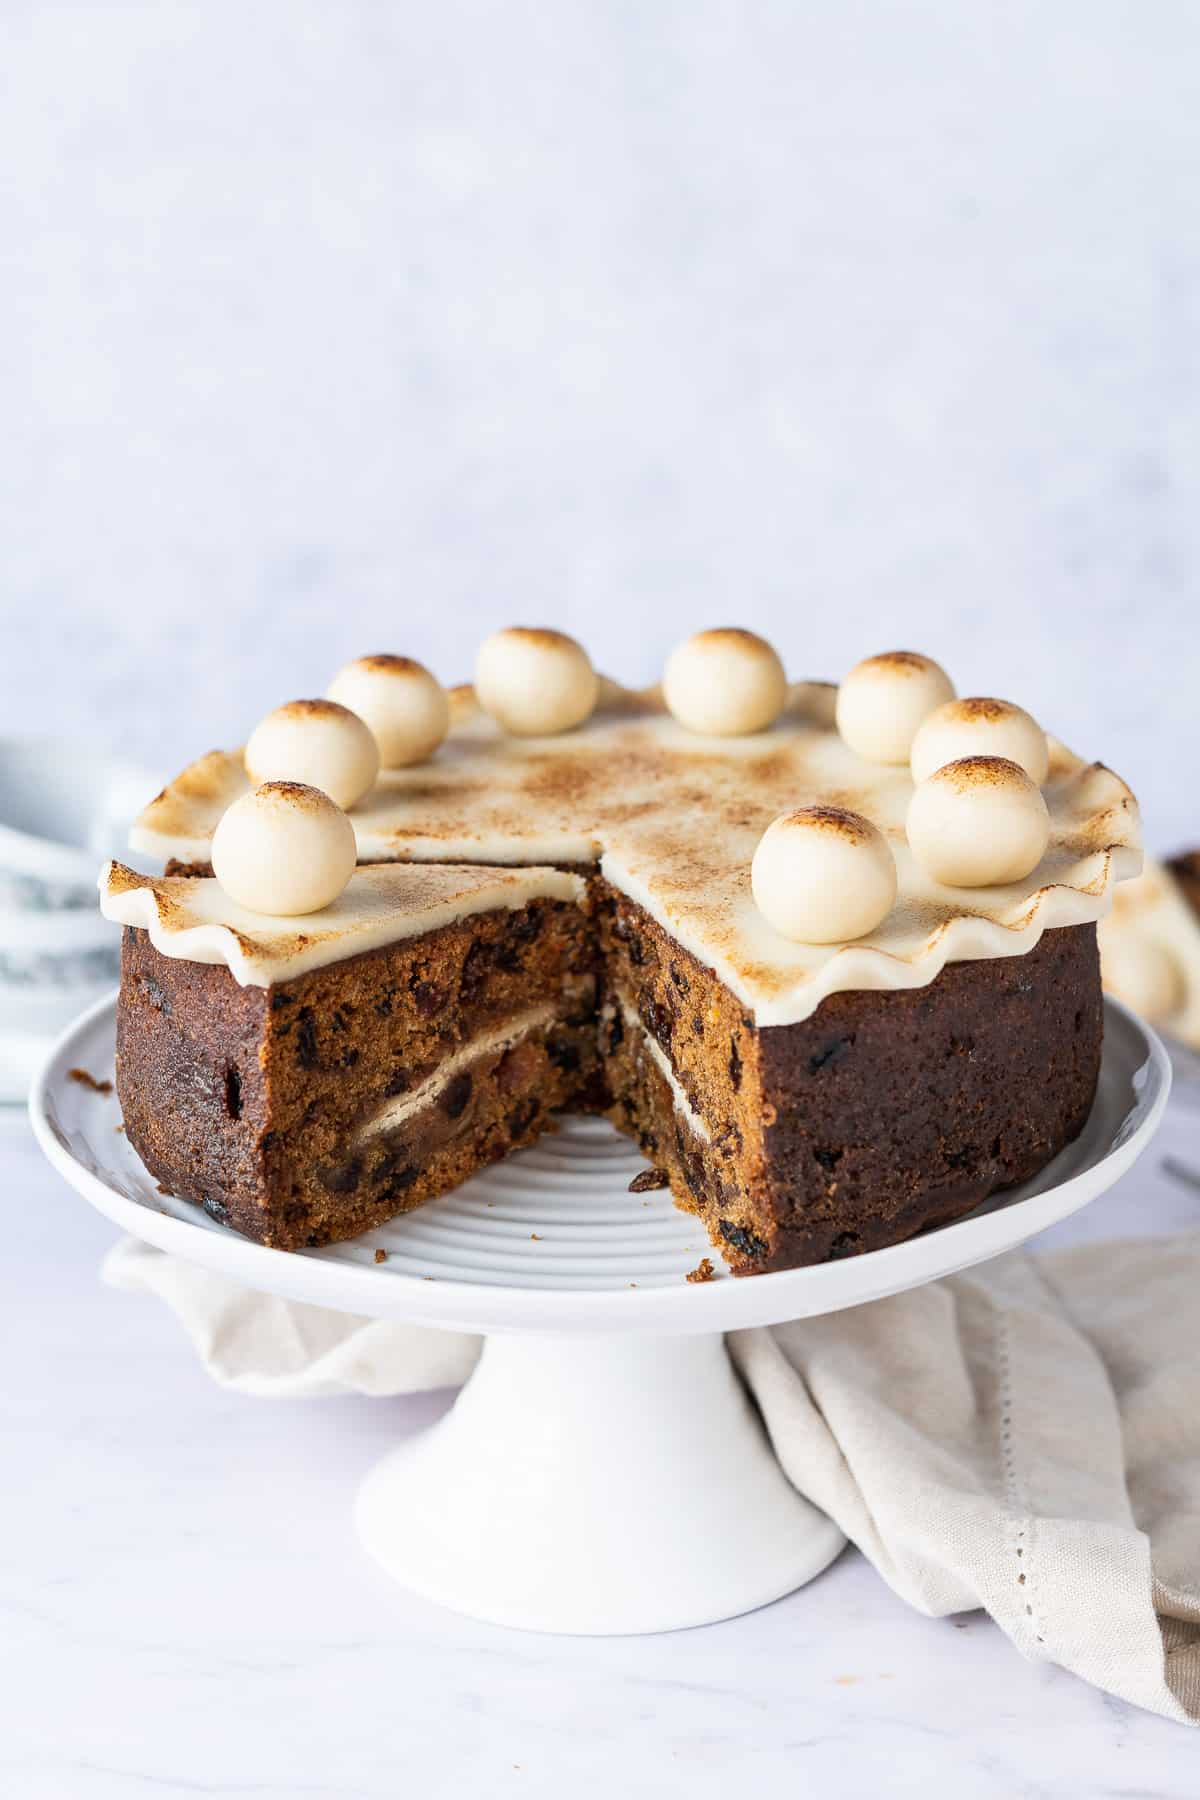 Sliced vegan Simnel cake on a white cake stand on a light grey background